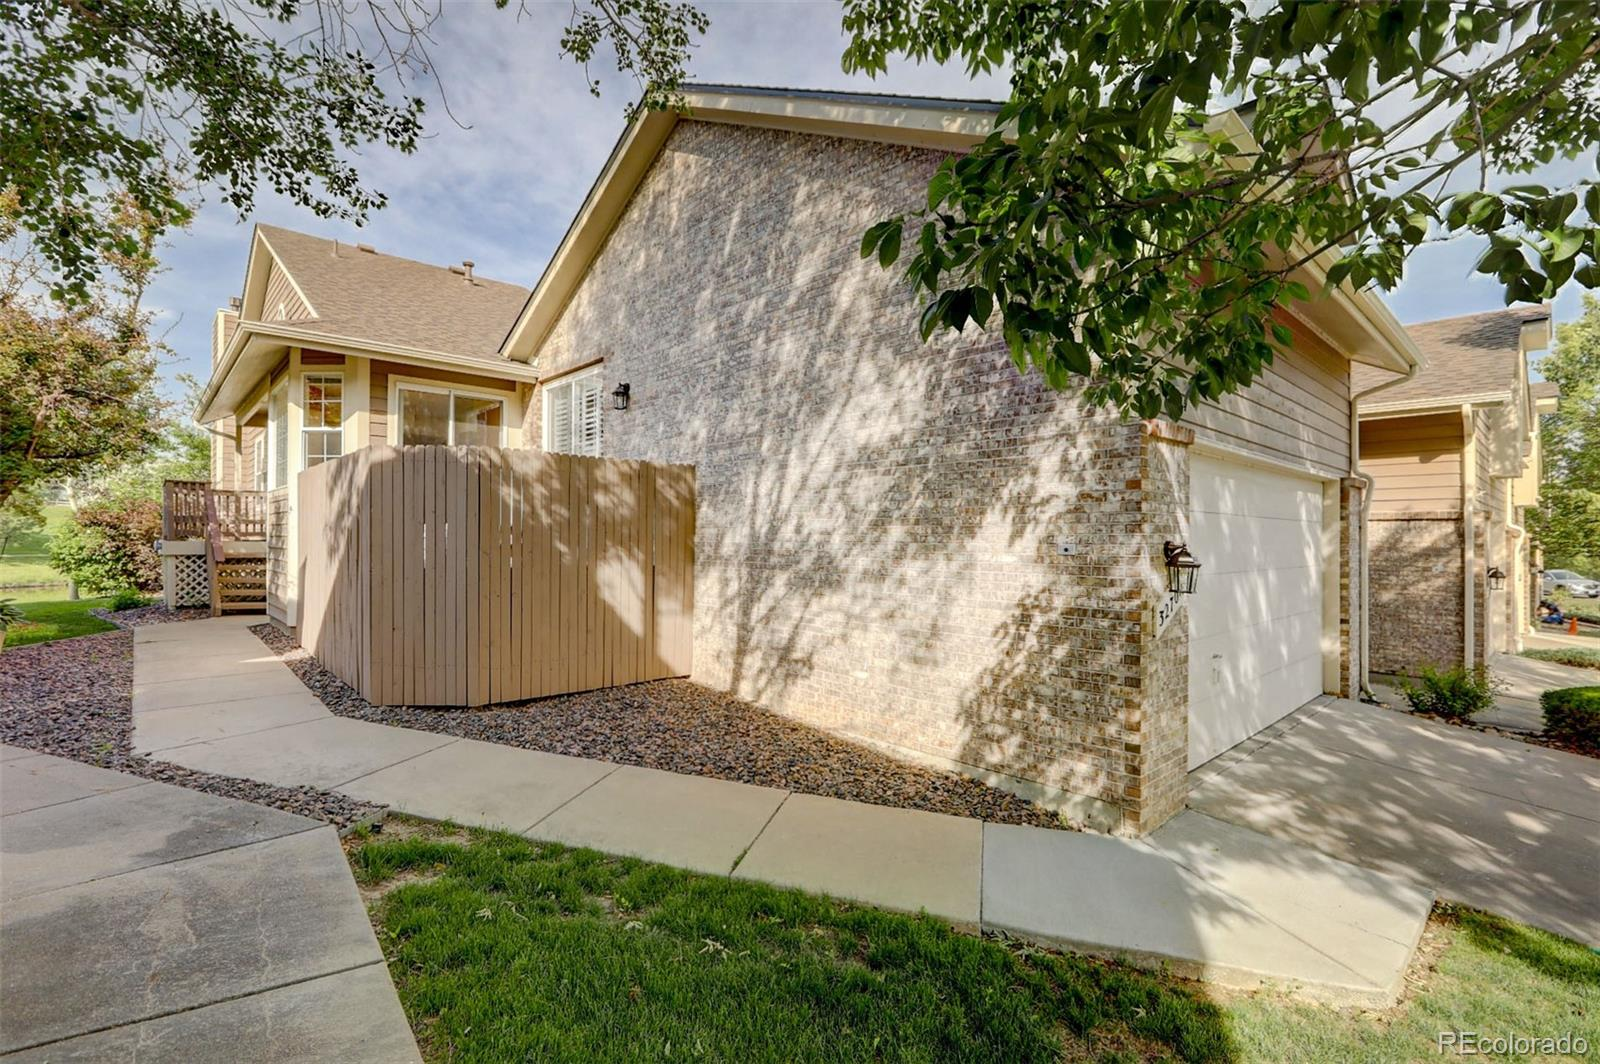 MLS# 3108775 - 31 - 3270 W 114th Circle #A, Westminster, CO 80031